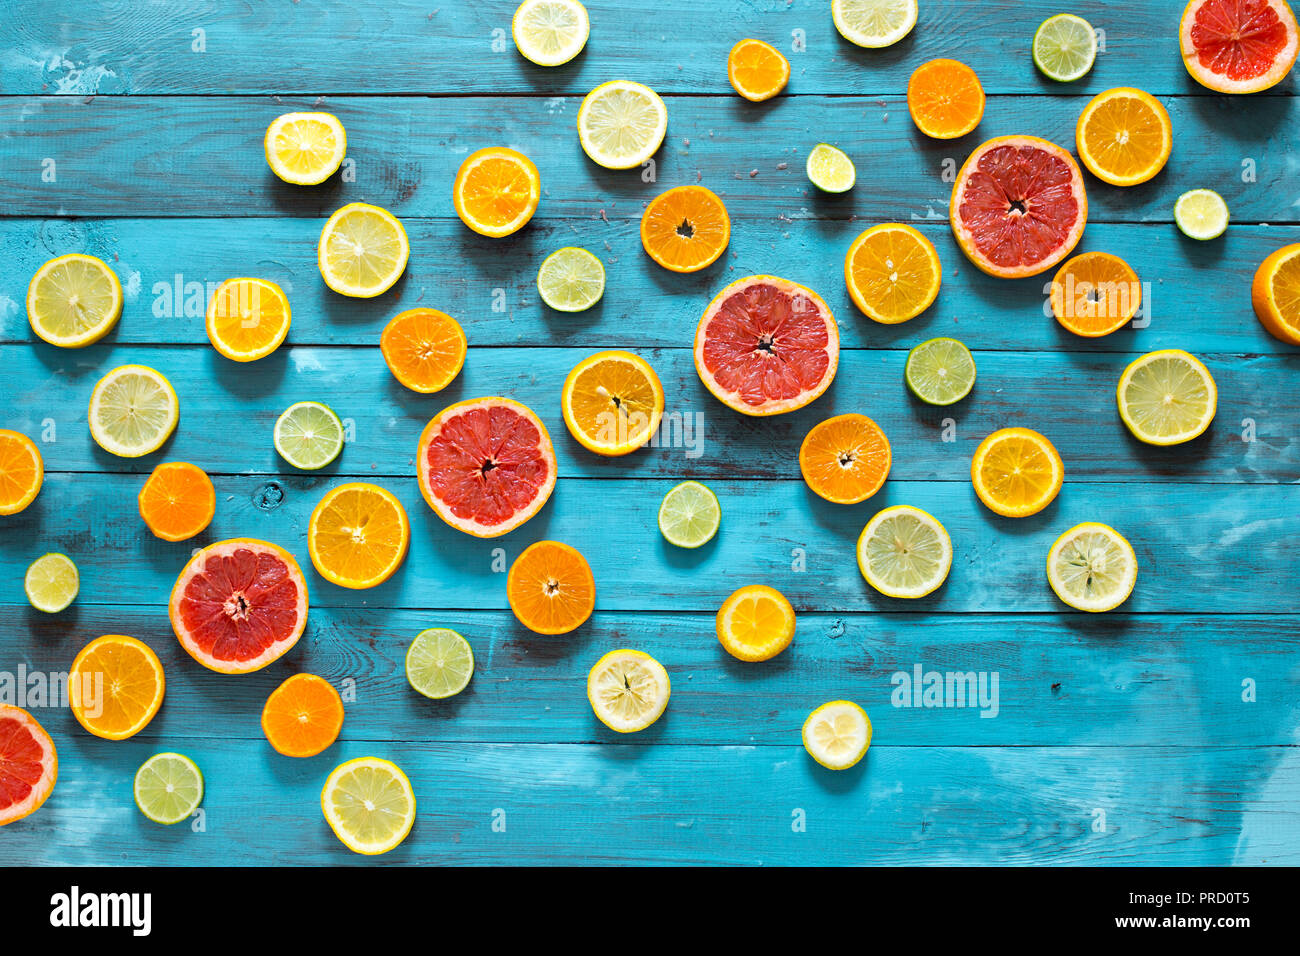 Fruit background. Colorful fresh fruits on blue wooden table. Flat lay - Stock Image